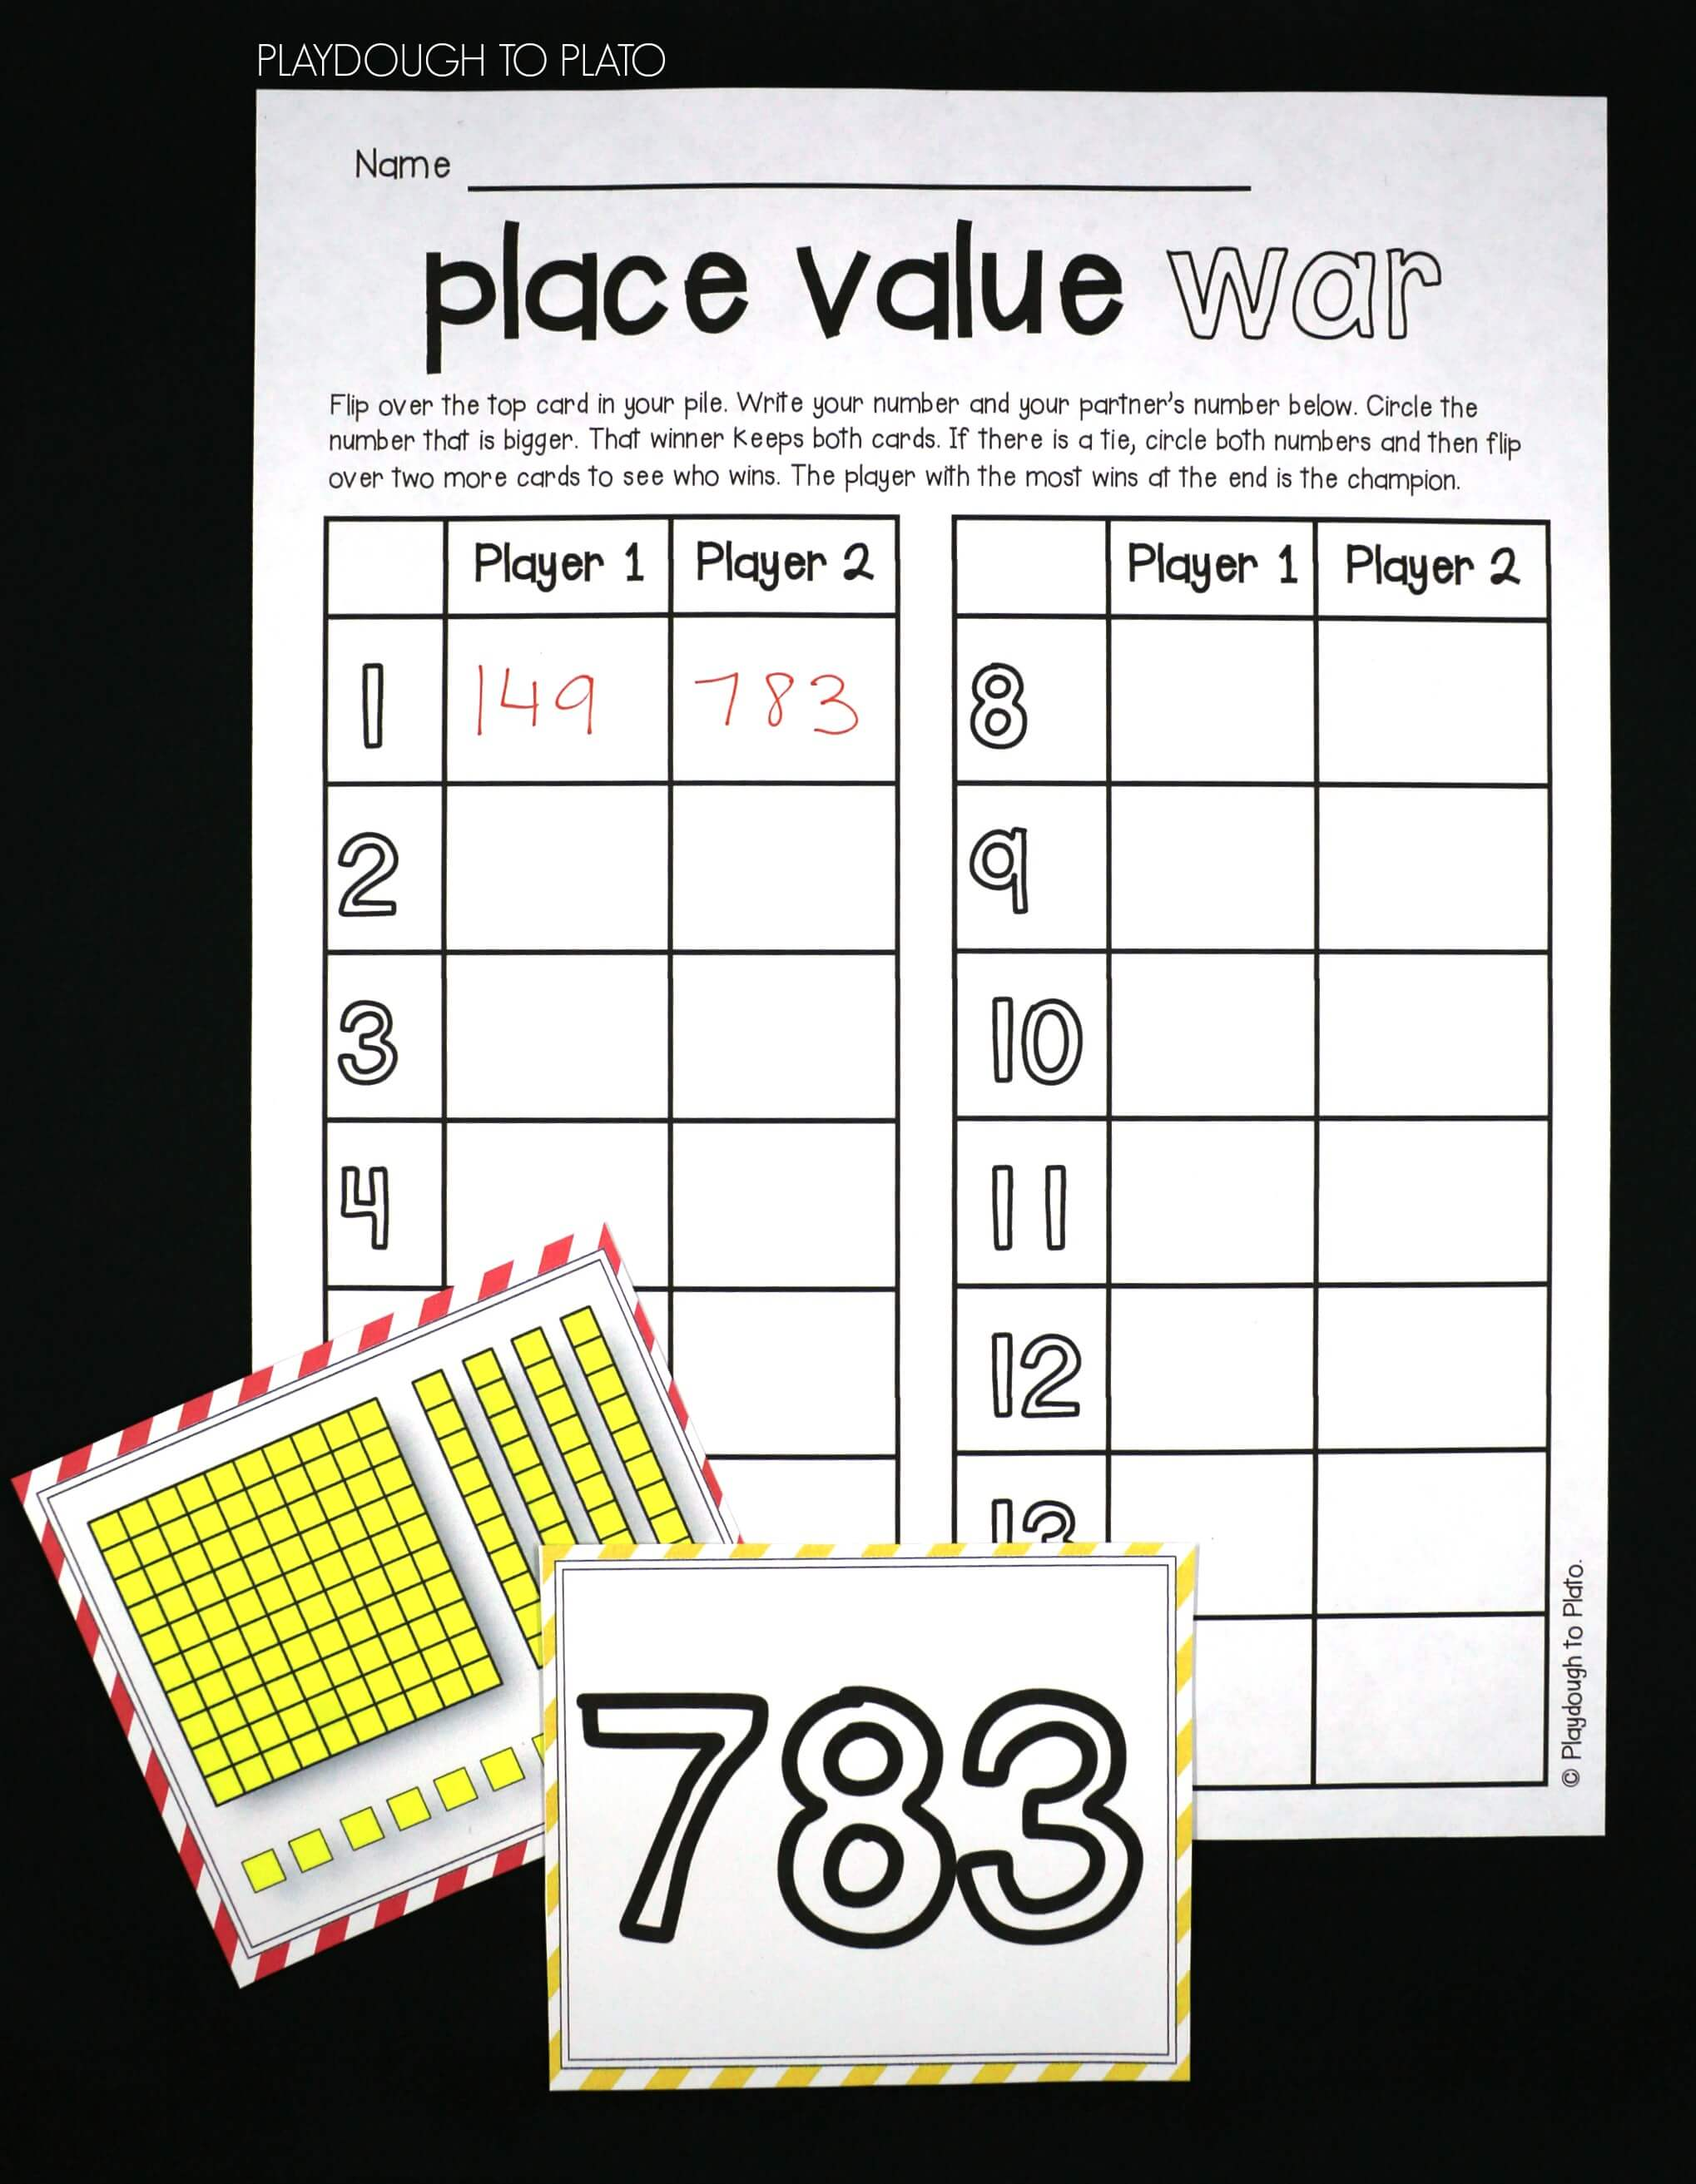 worksheet Place And Value place value war playdough to plato fun game for kids